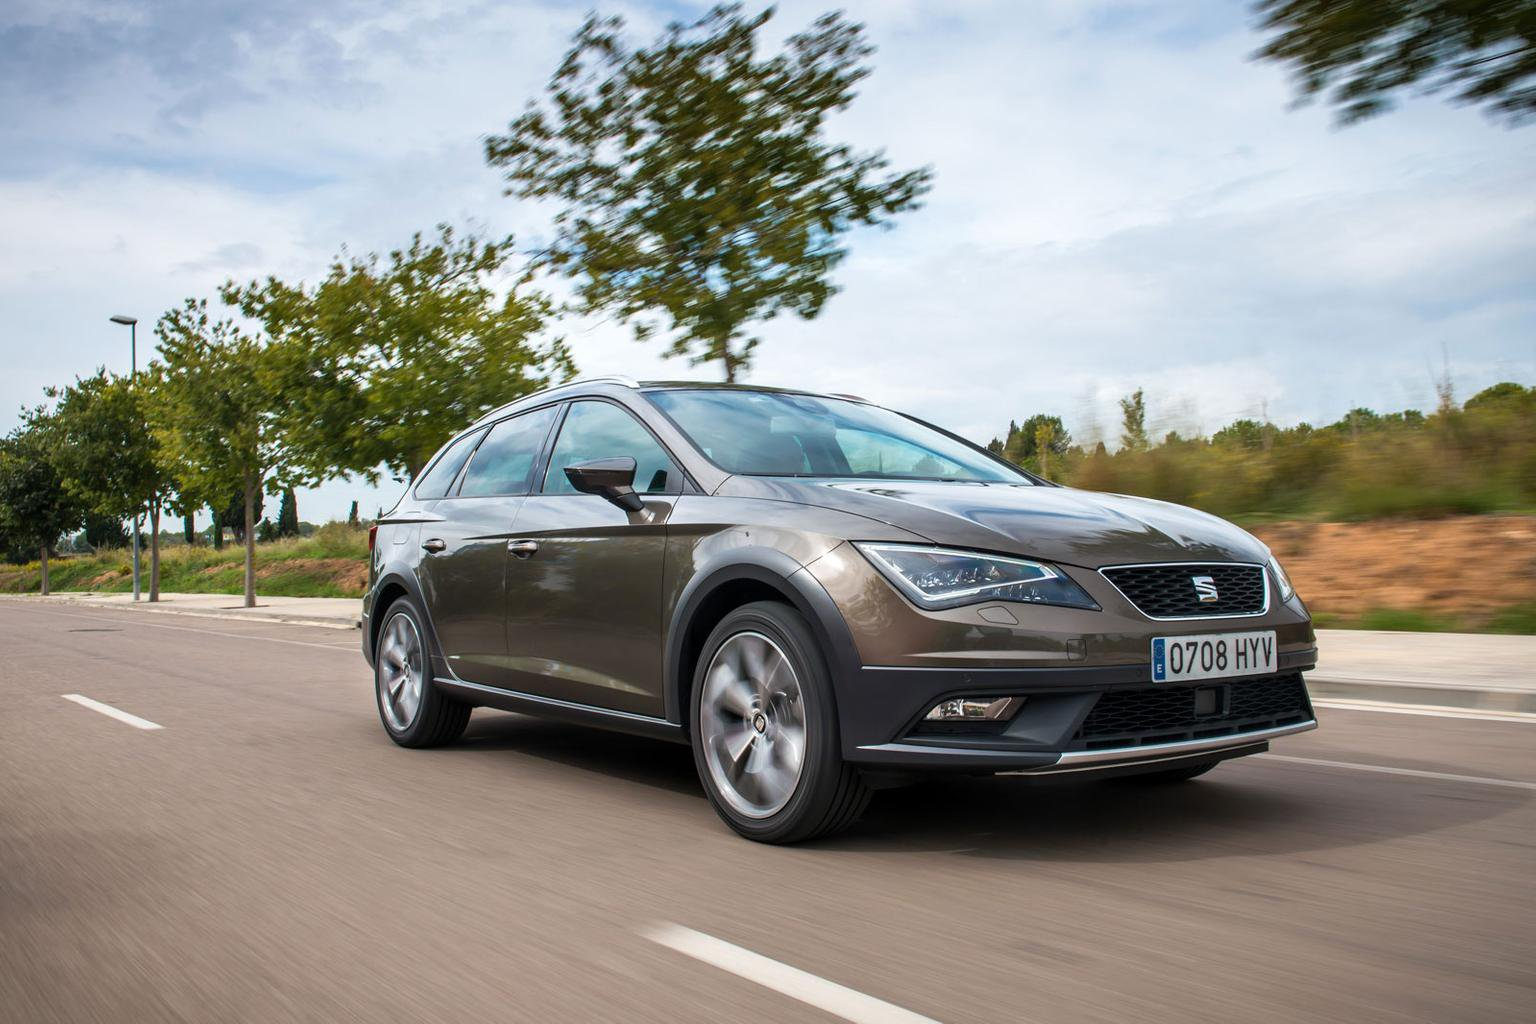 2014 Seat Leon ST X-Perience review